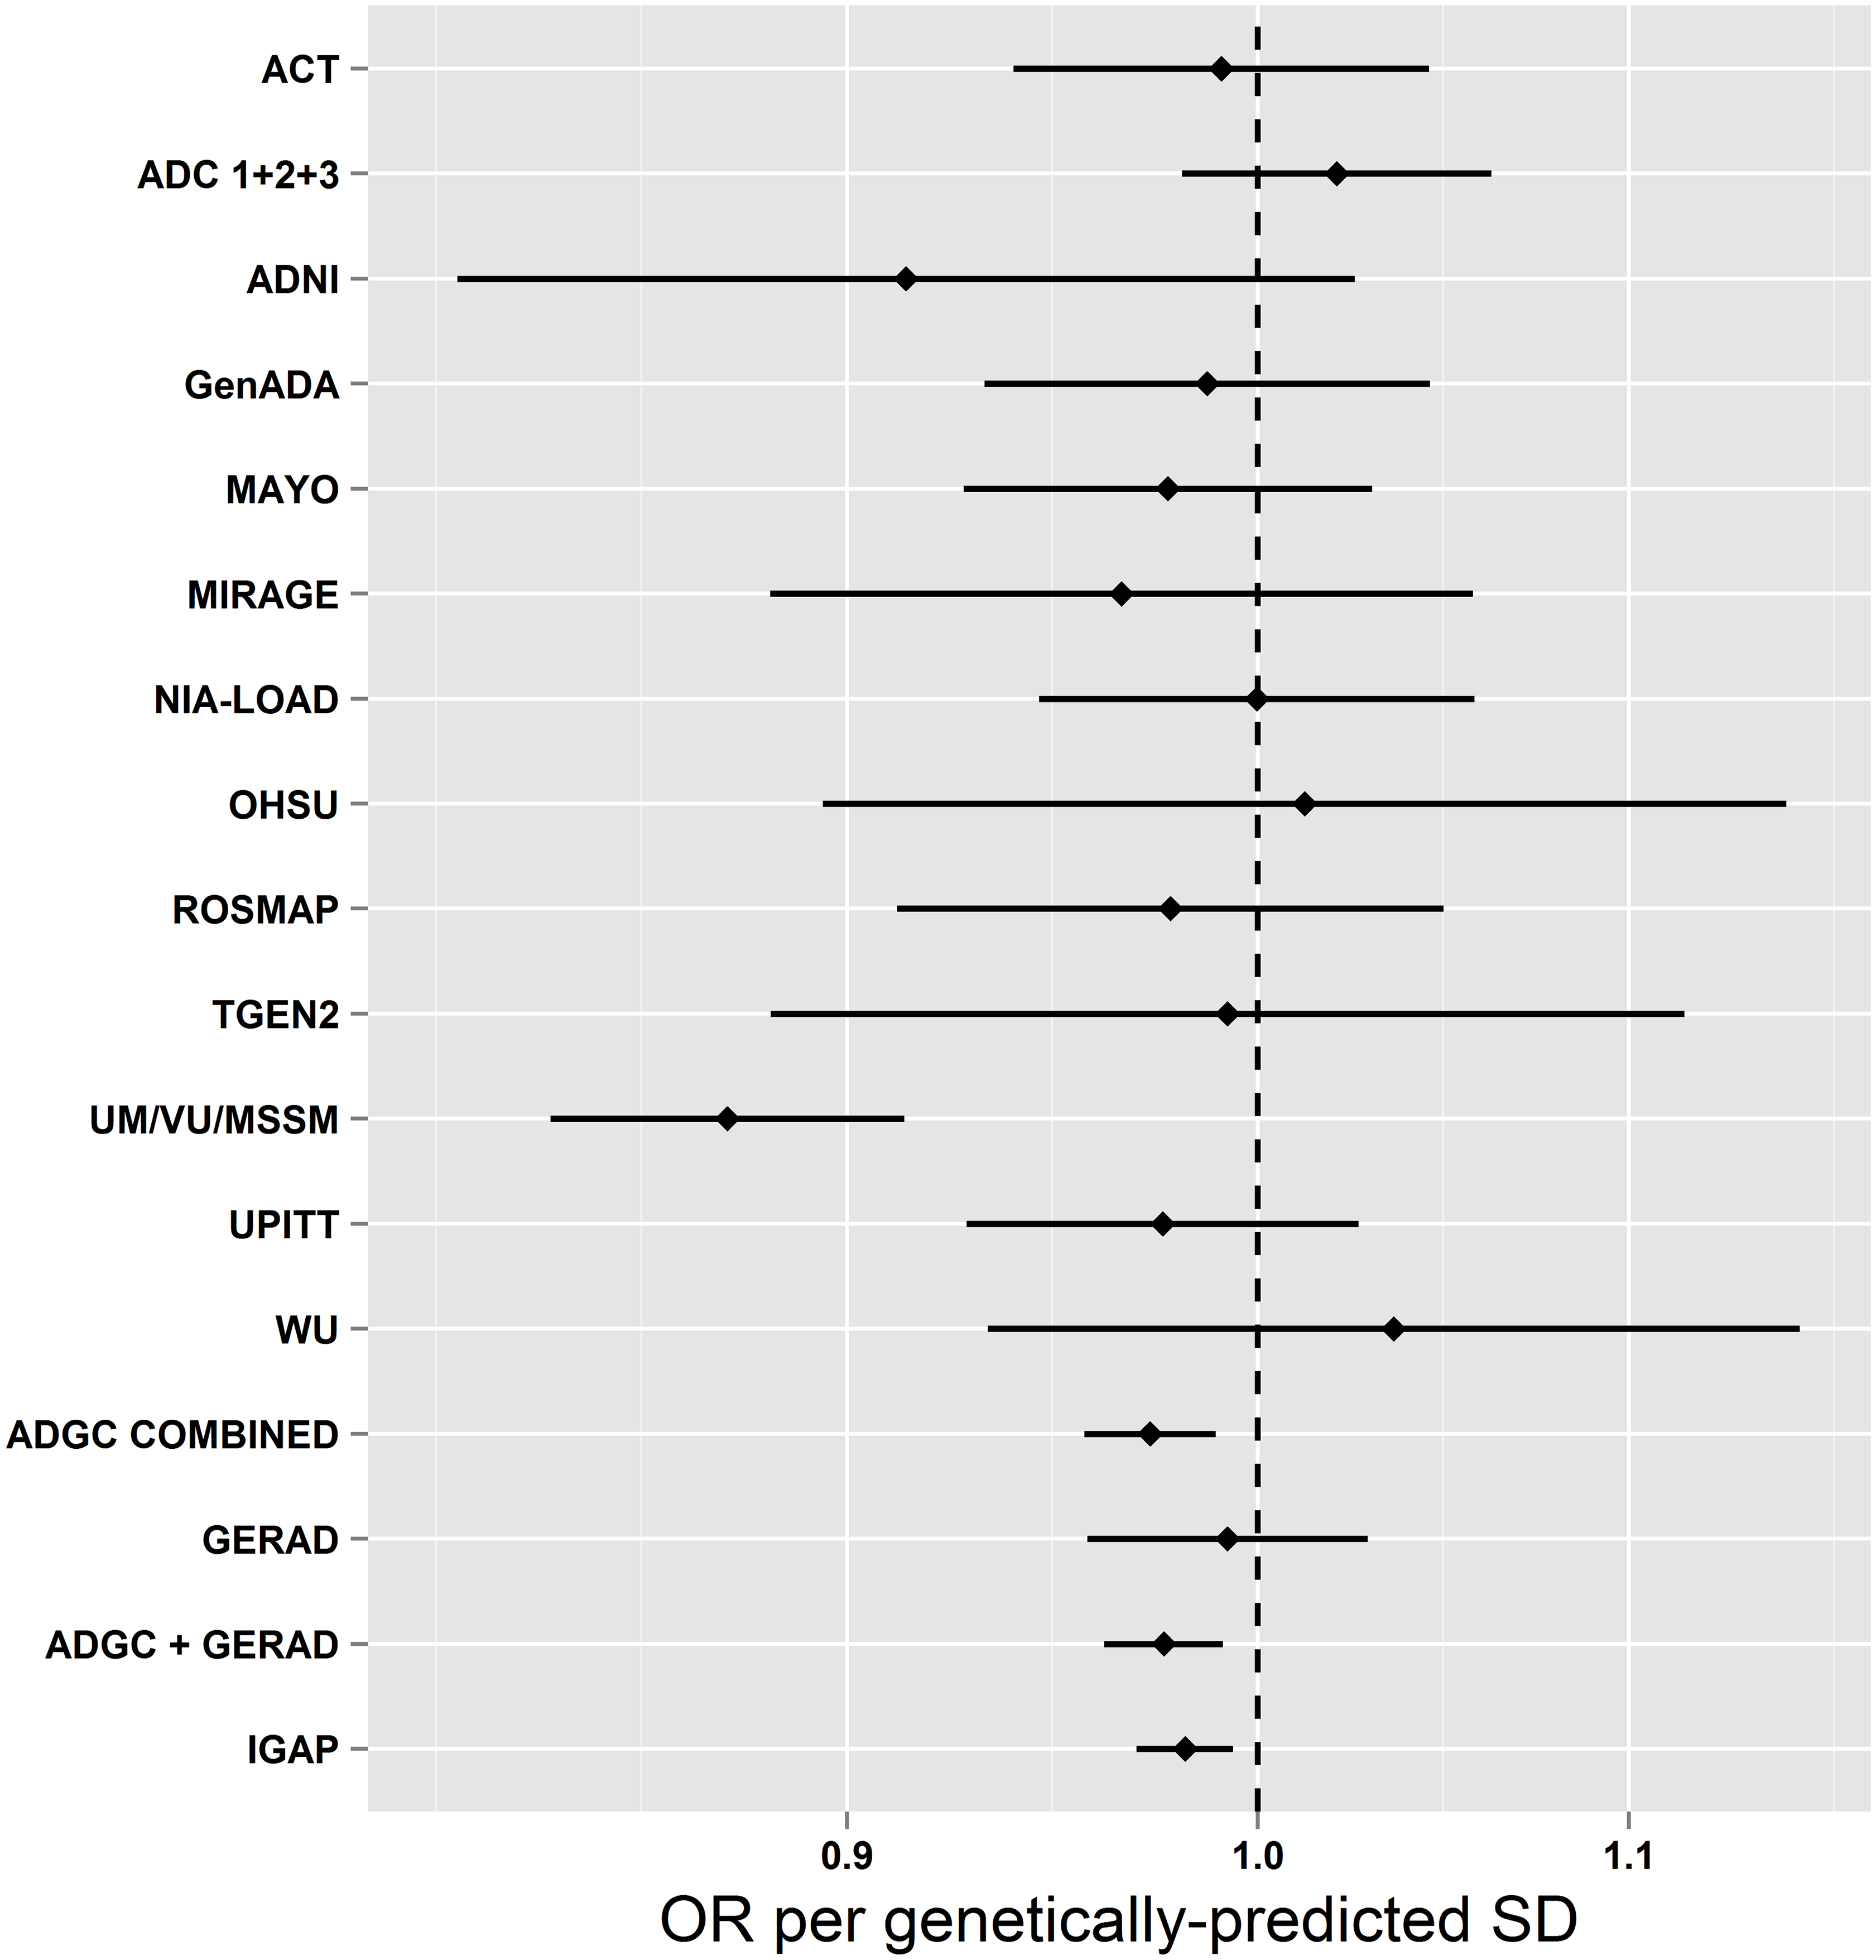 Mendelian randomization estimates of the association of systolic blood pressure with AD in individual ADGC studies and overall in ADGC, GERAD1, and IGAP.